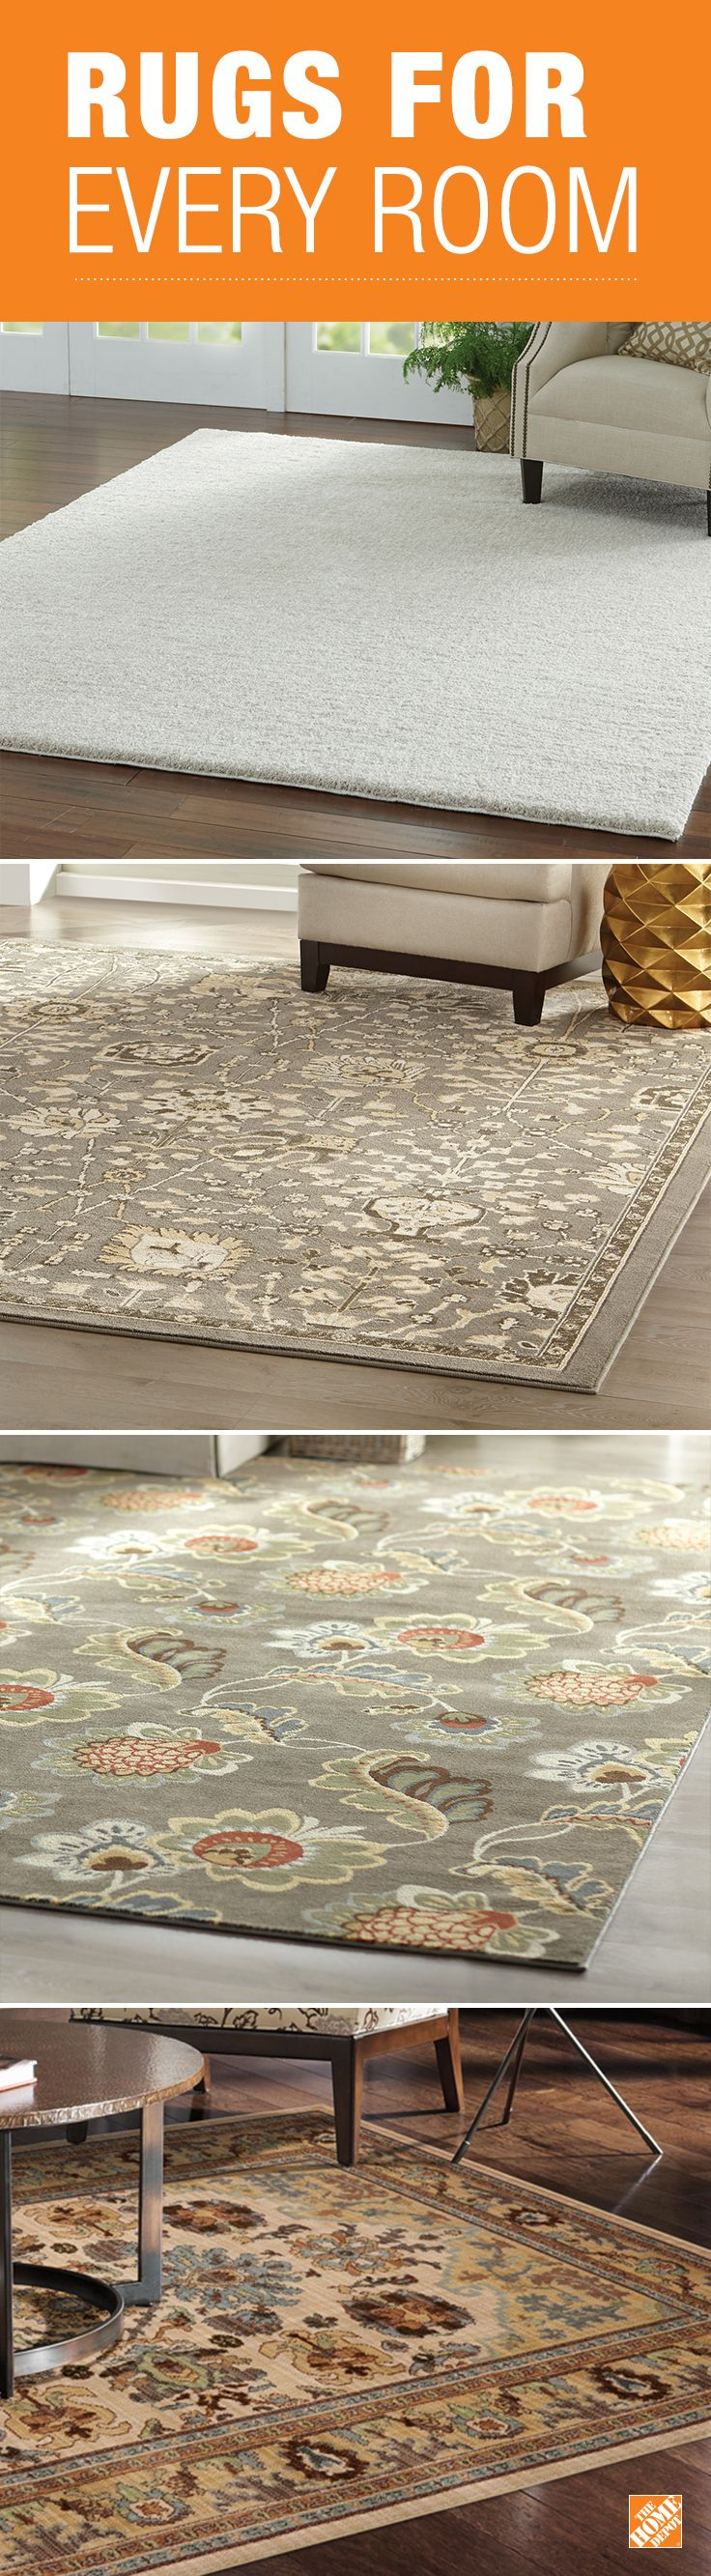 Softening the hardwood floors in your home with a rug is easy with new Mohawk designs and styles. With many different shapes and sizes to choose from a new look in your living room, dining room, bedroom, foyer or any other space is easy to achieve!